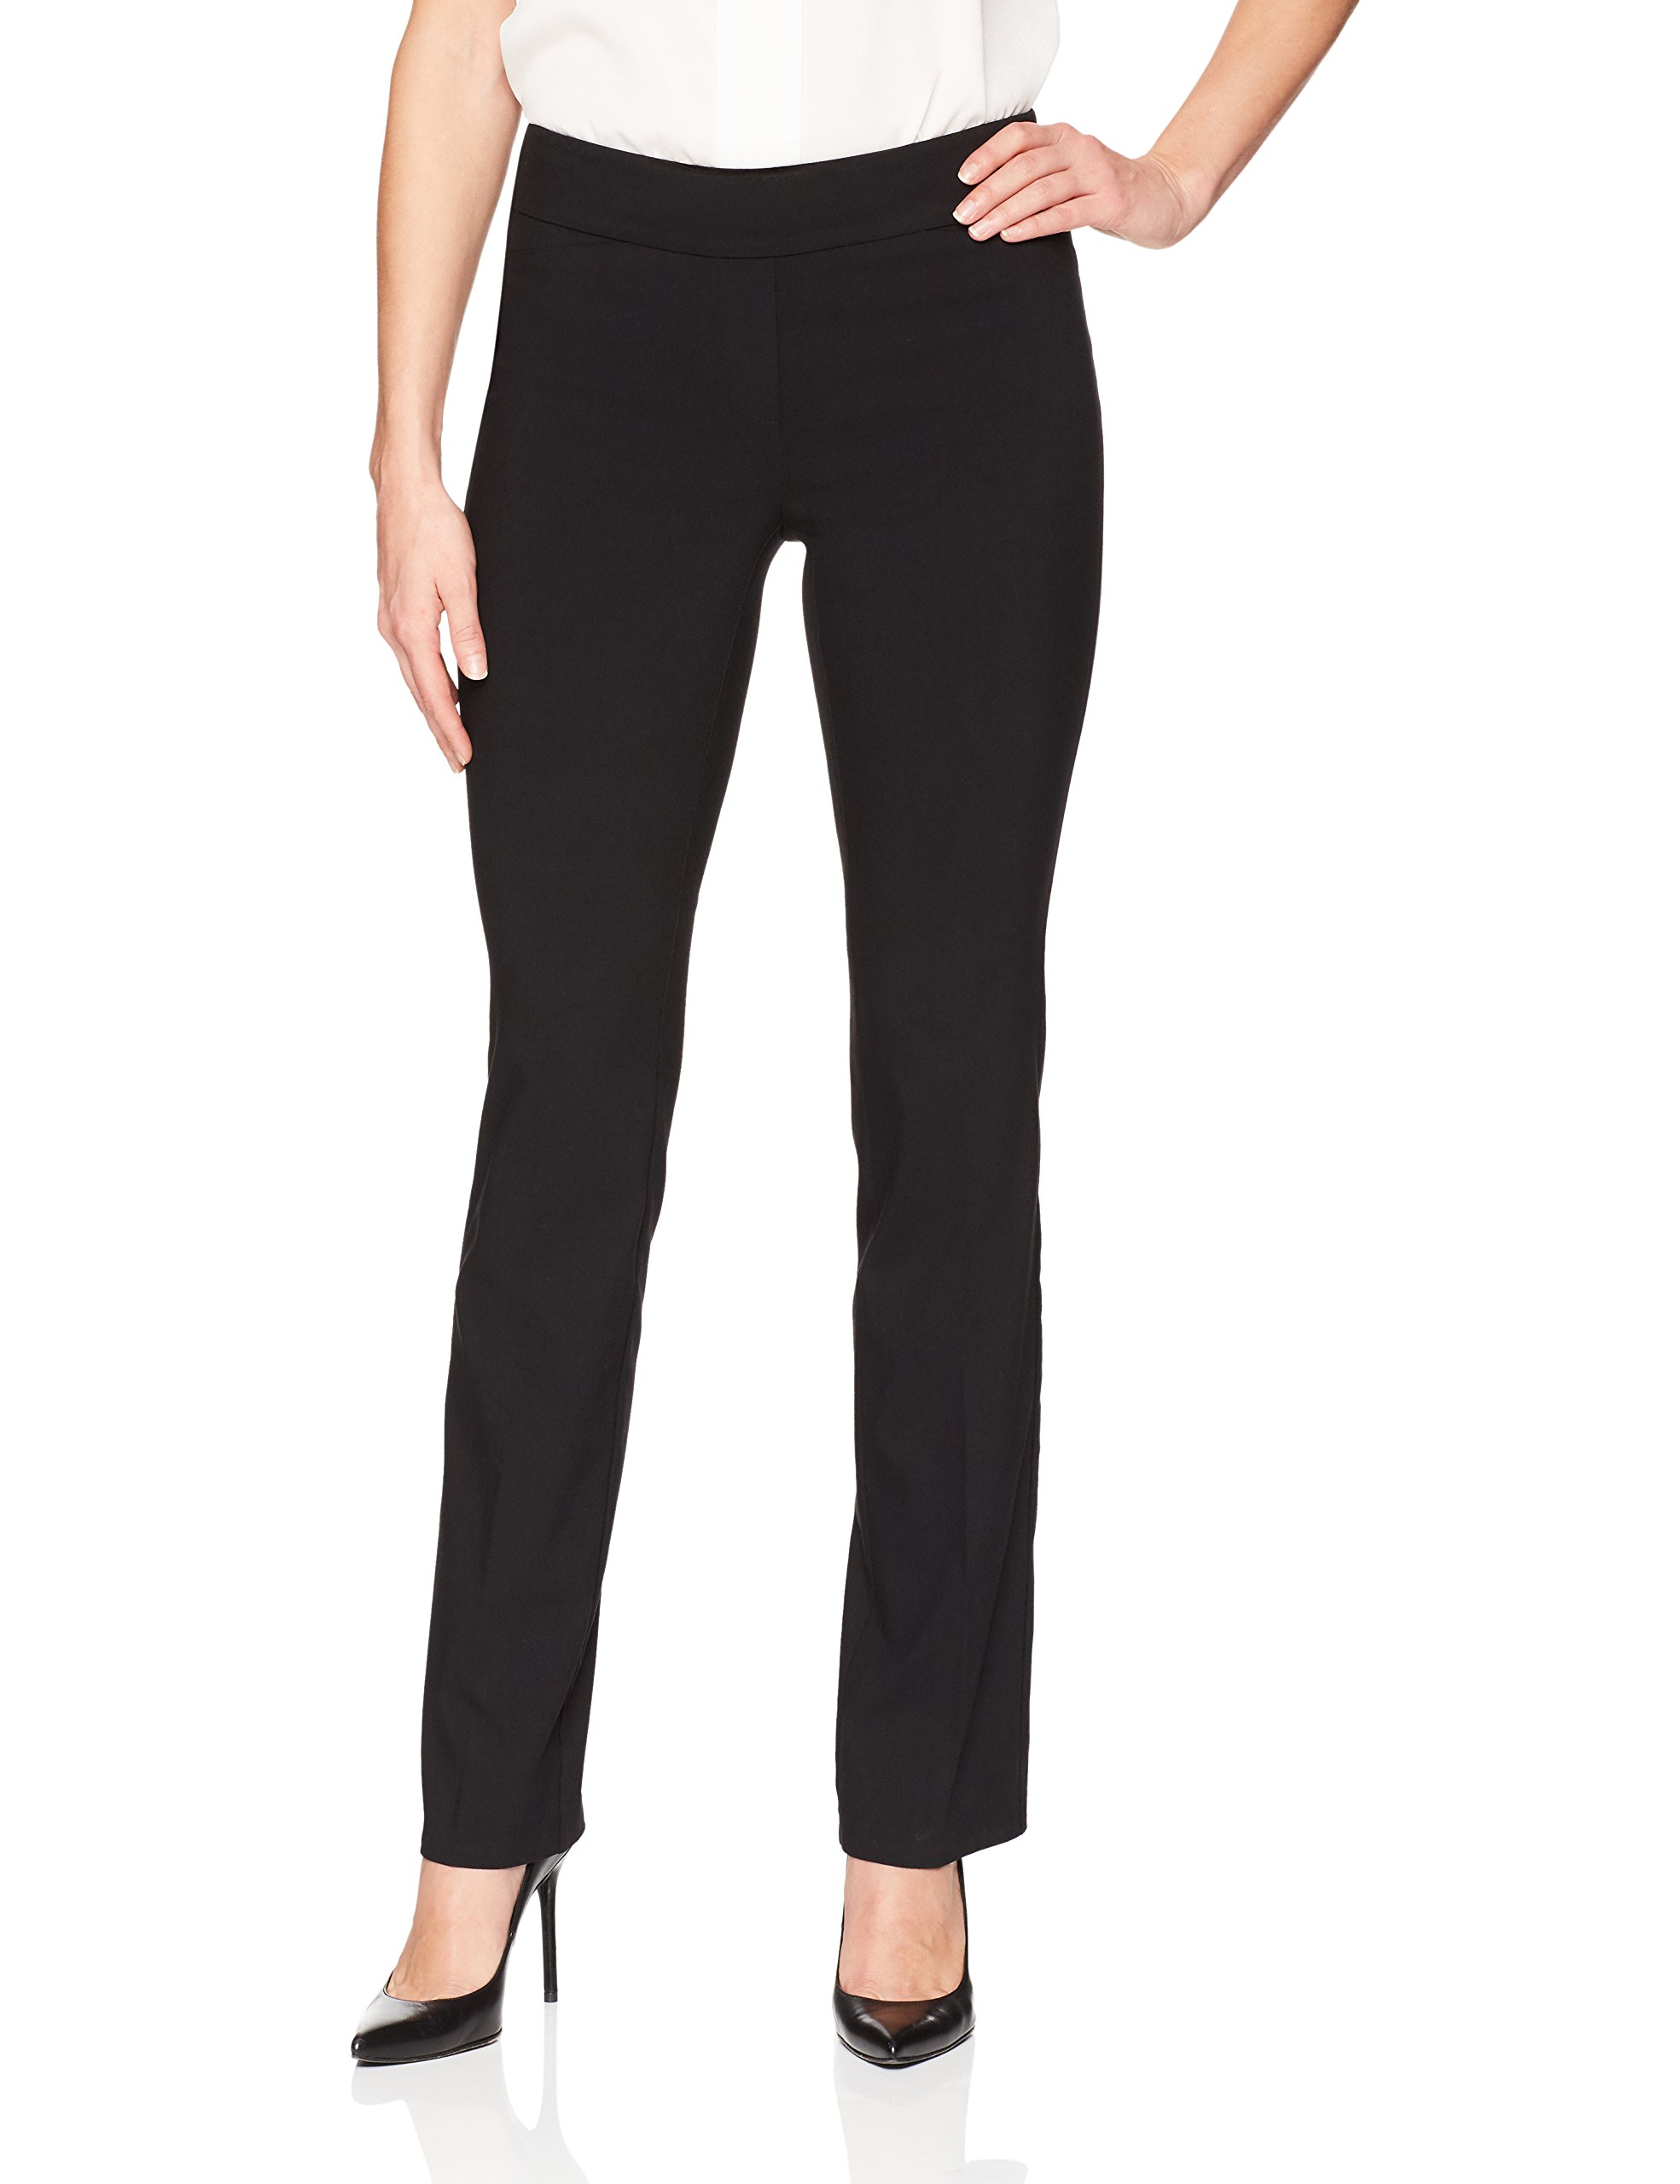 Lark & Ro Women's Barely Bootcut Stretch Pant: Comfort Fit, Black, 10